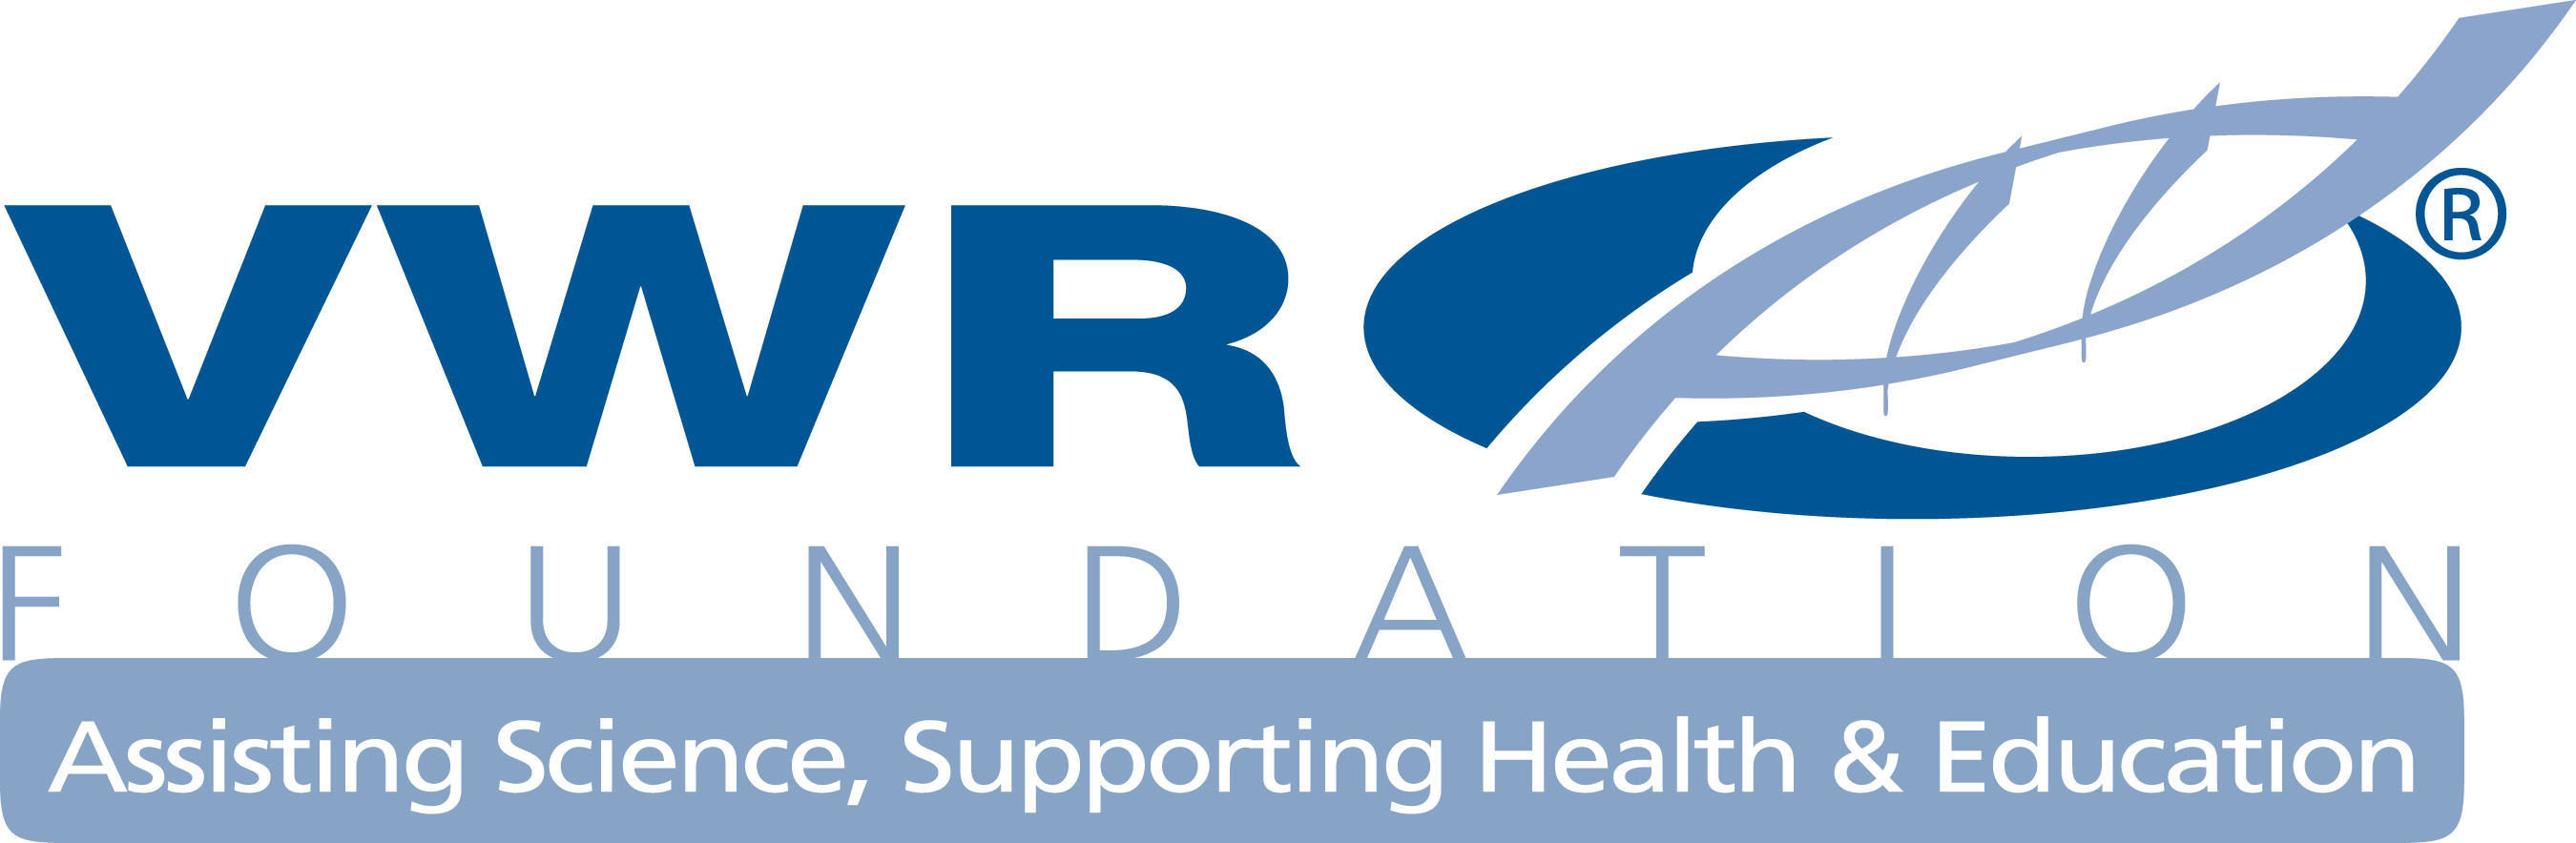 VWR Foundation logo.